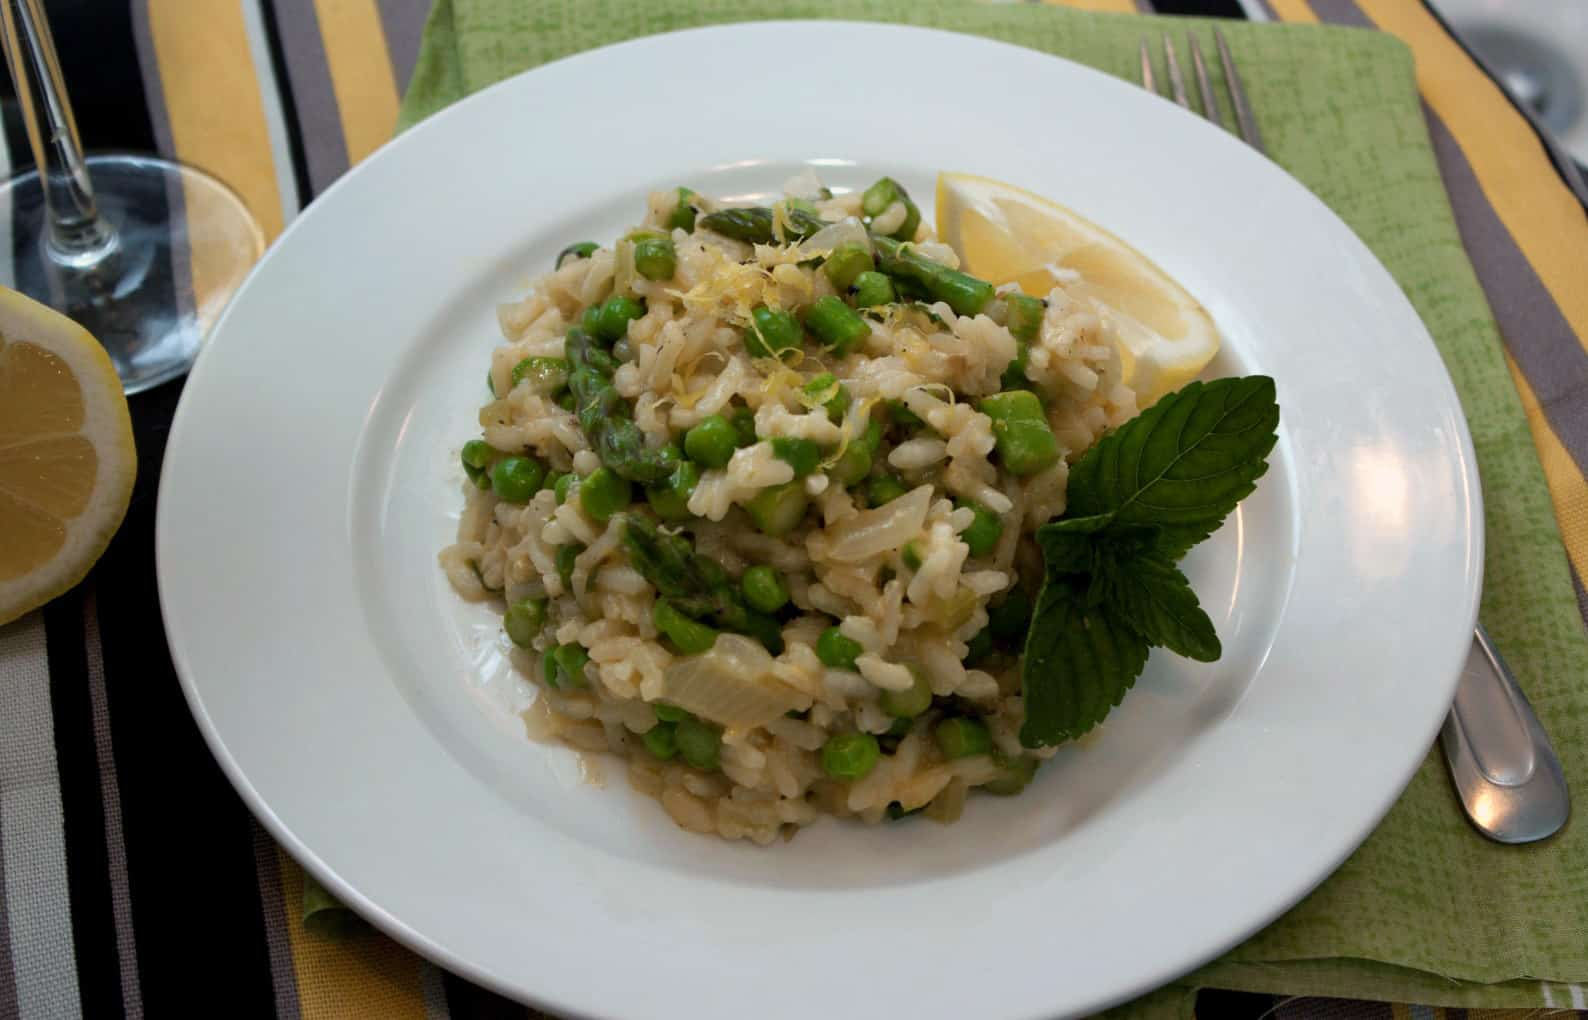 Lemony Risotto with Asparagus and Peas